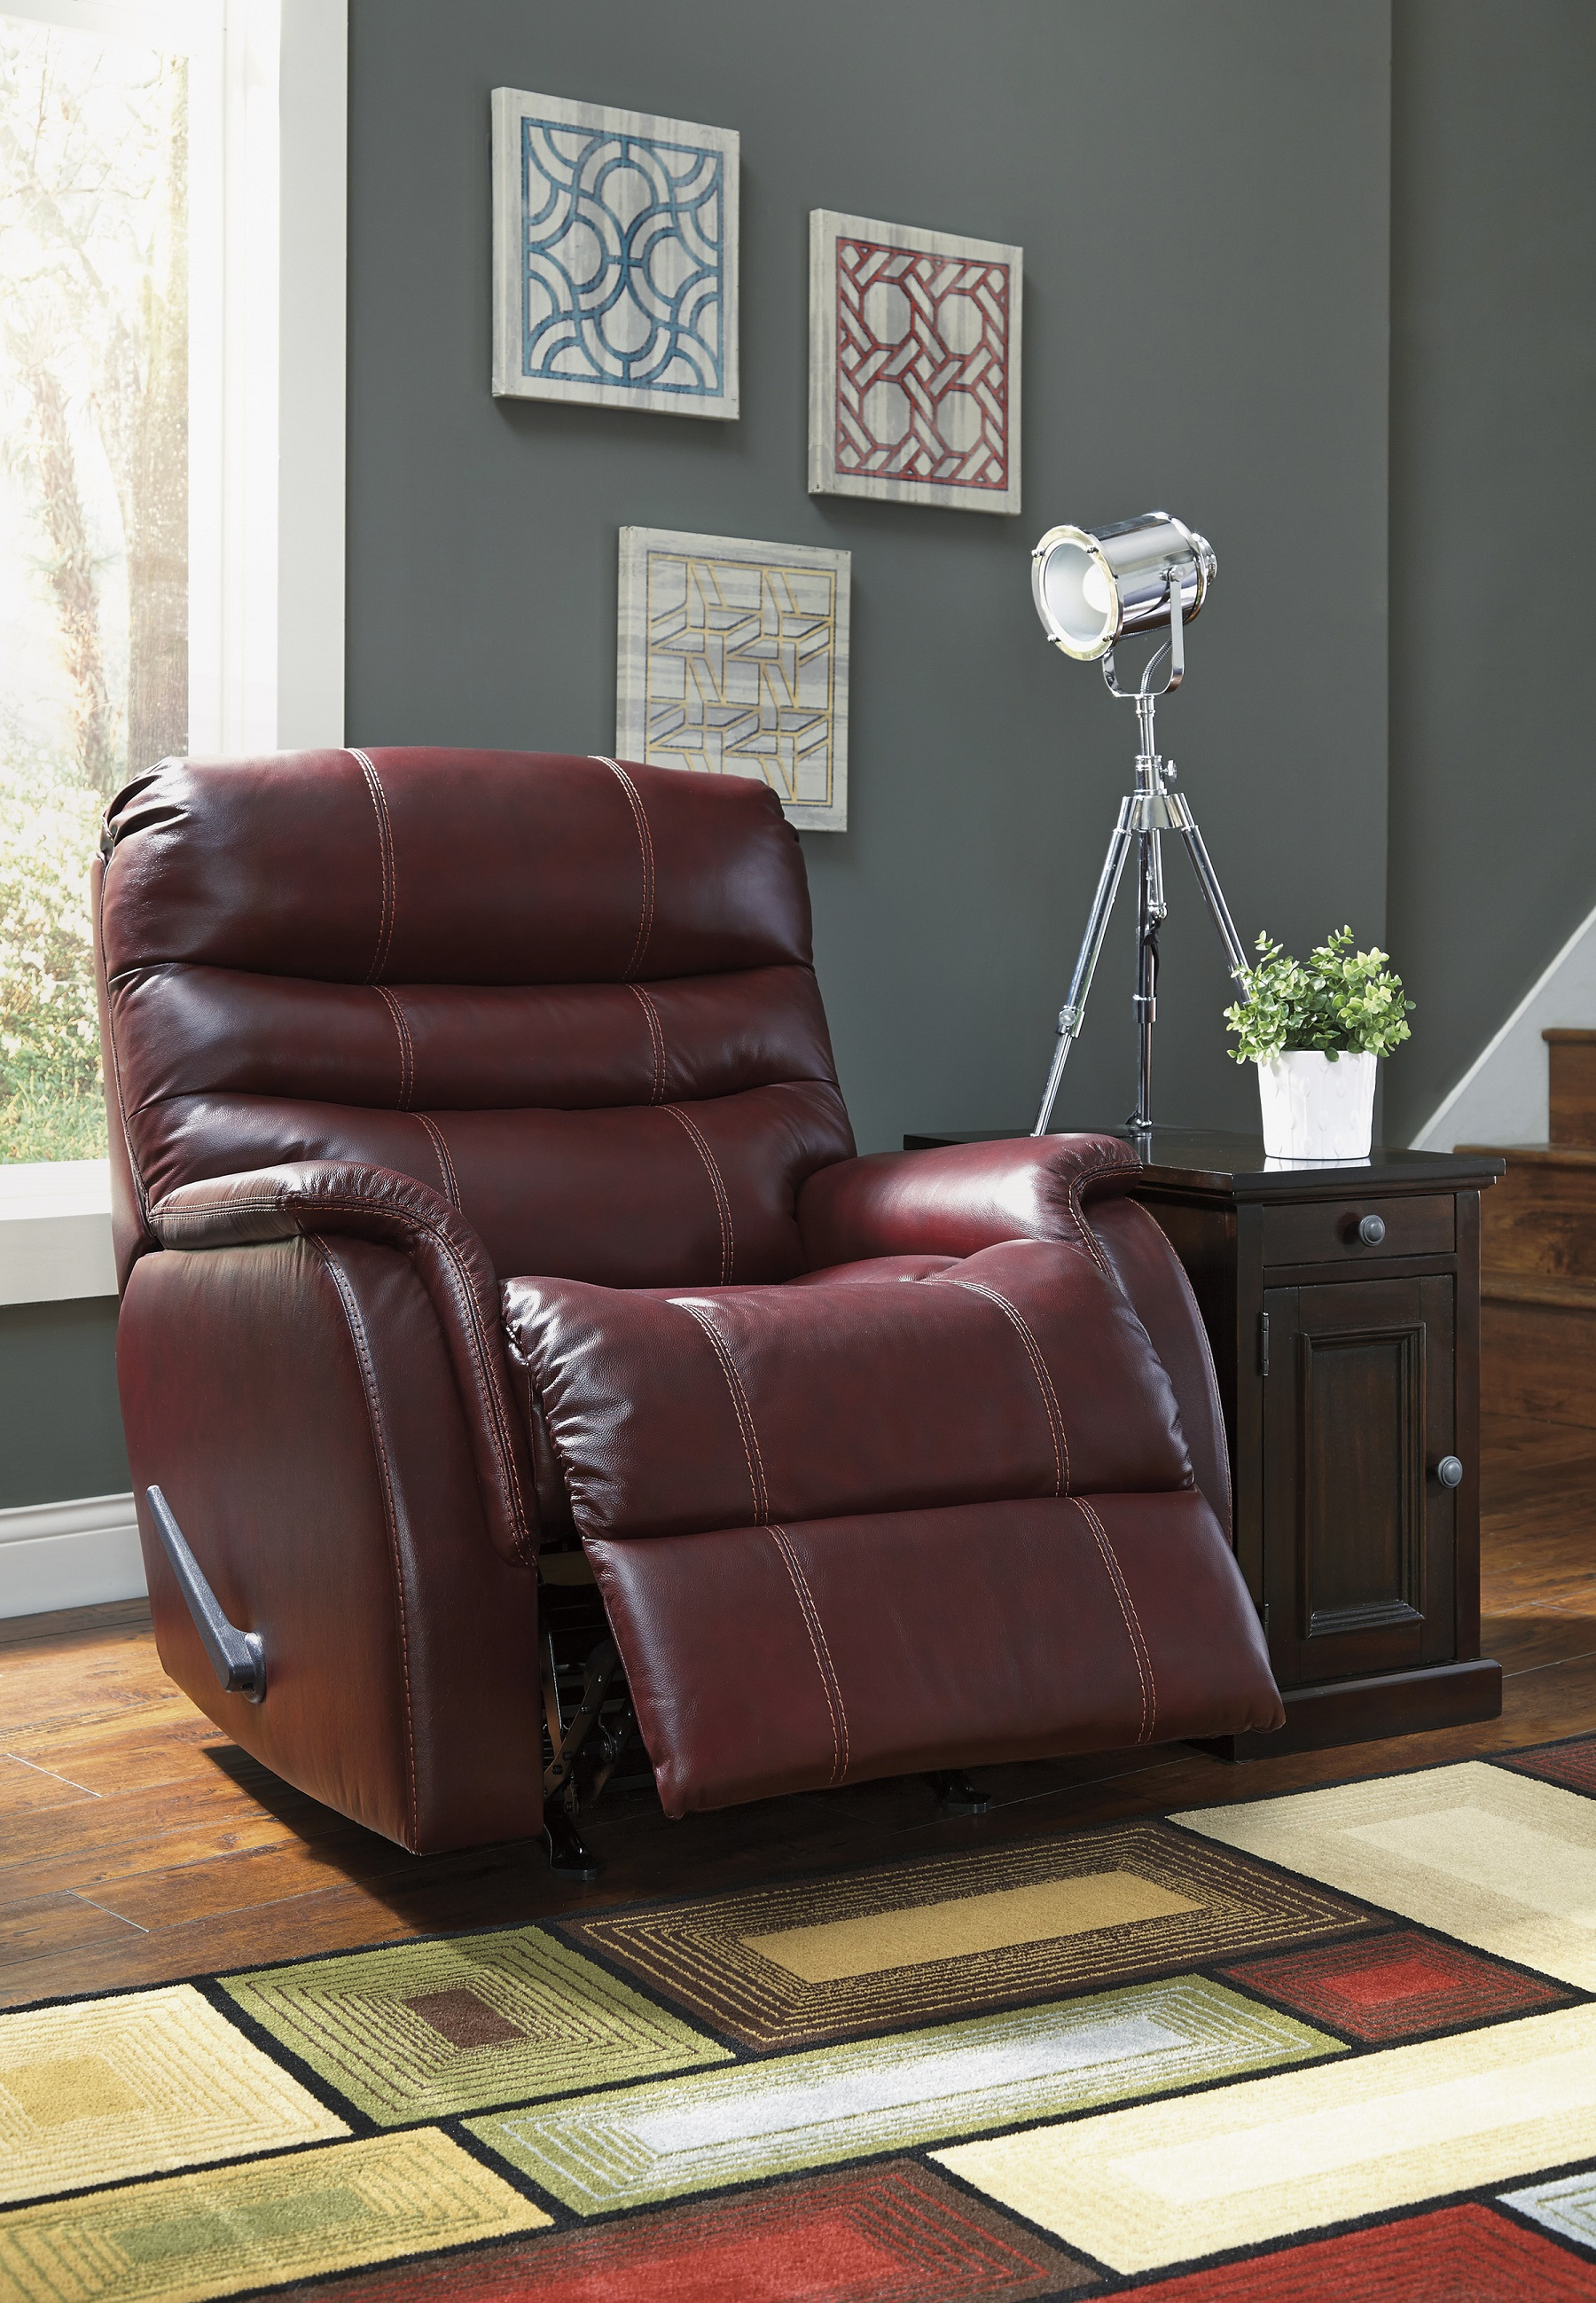 Bridger Leather Rocker Recliner Image